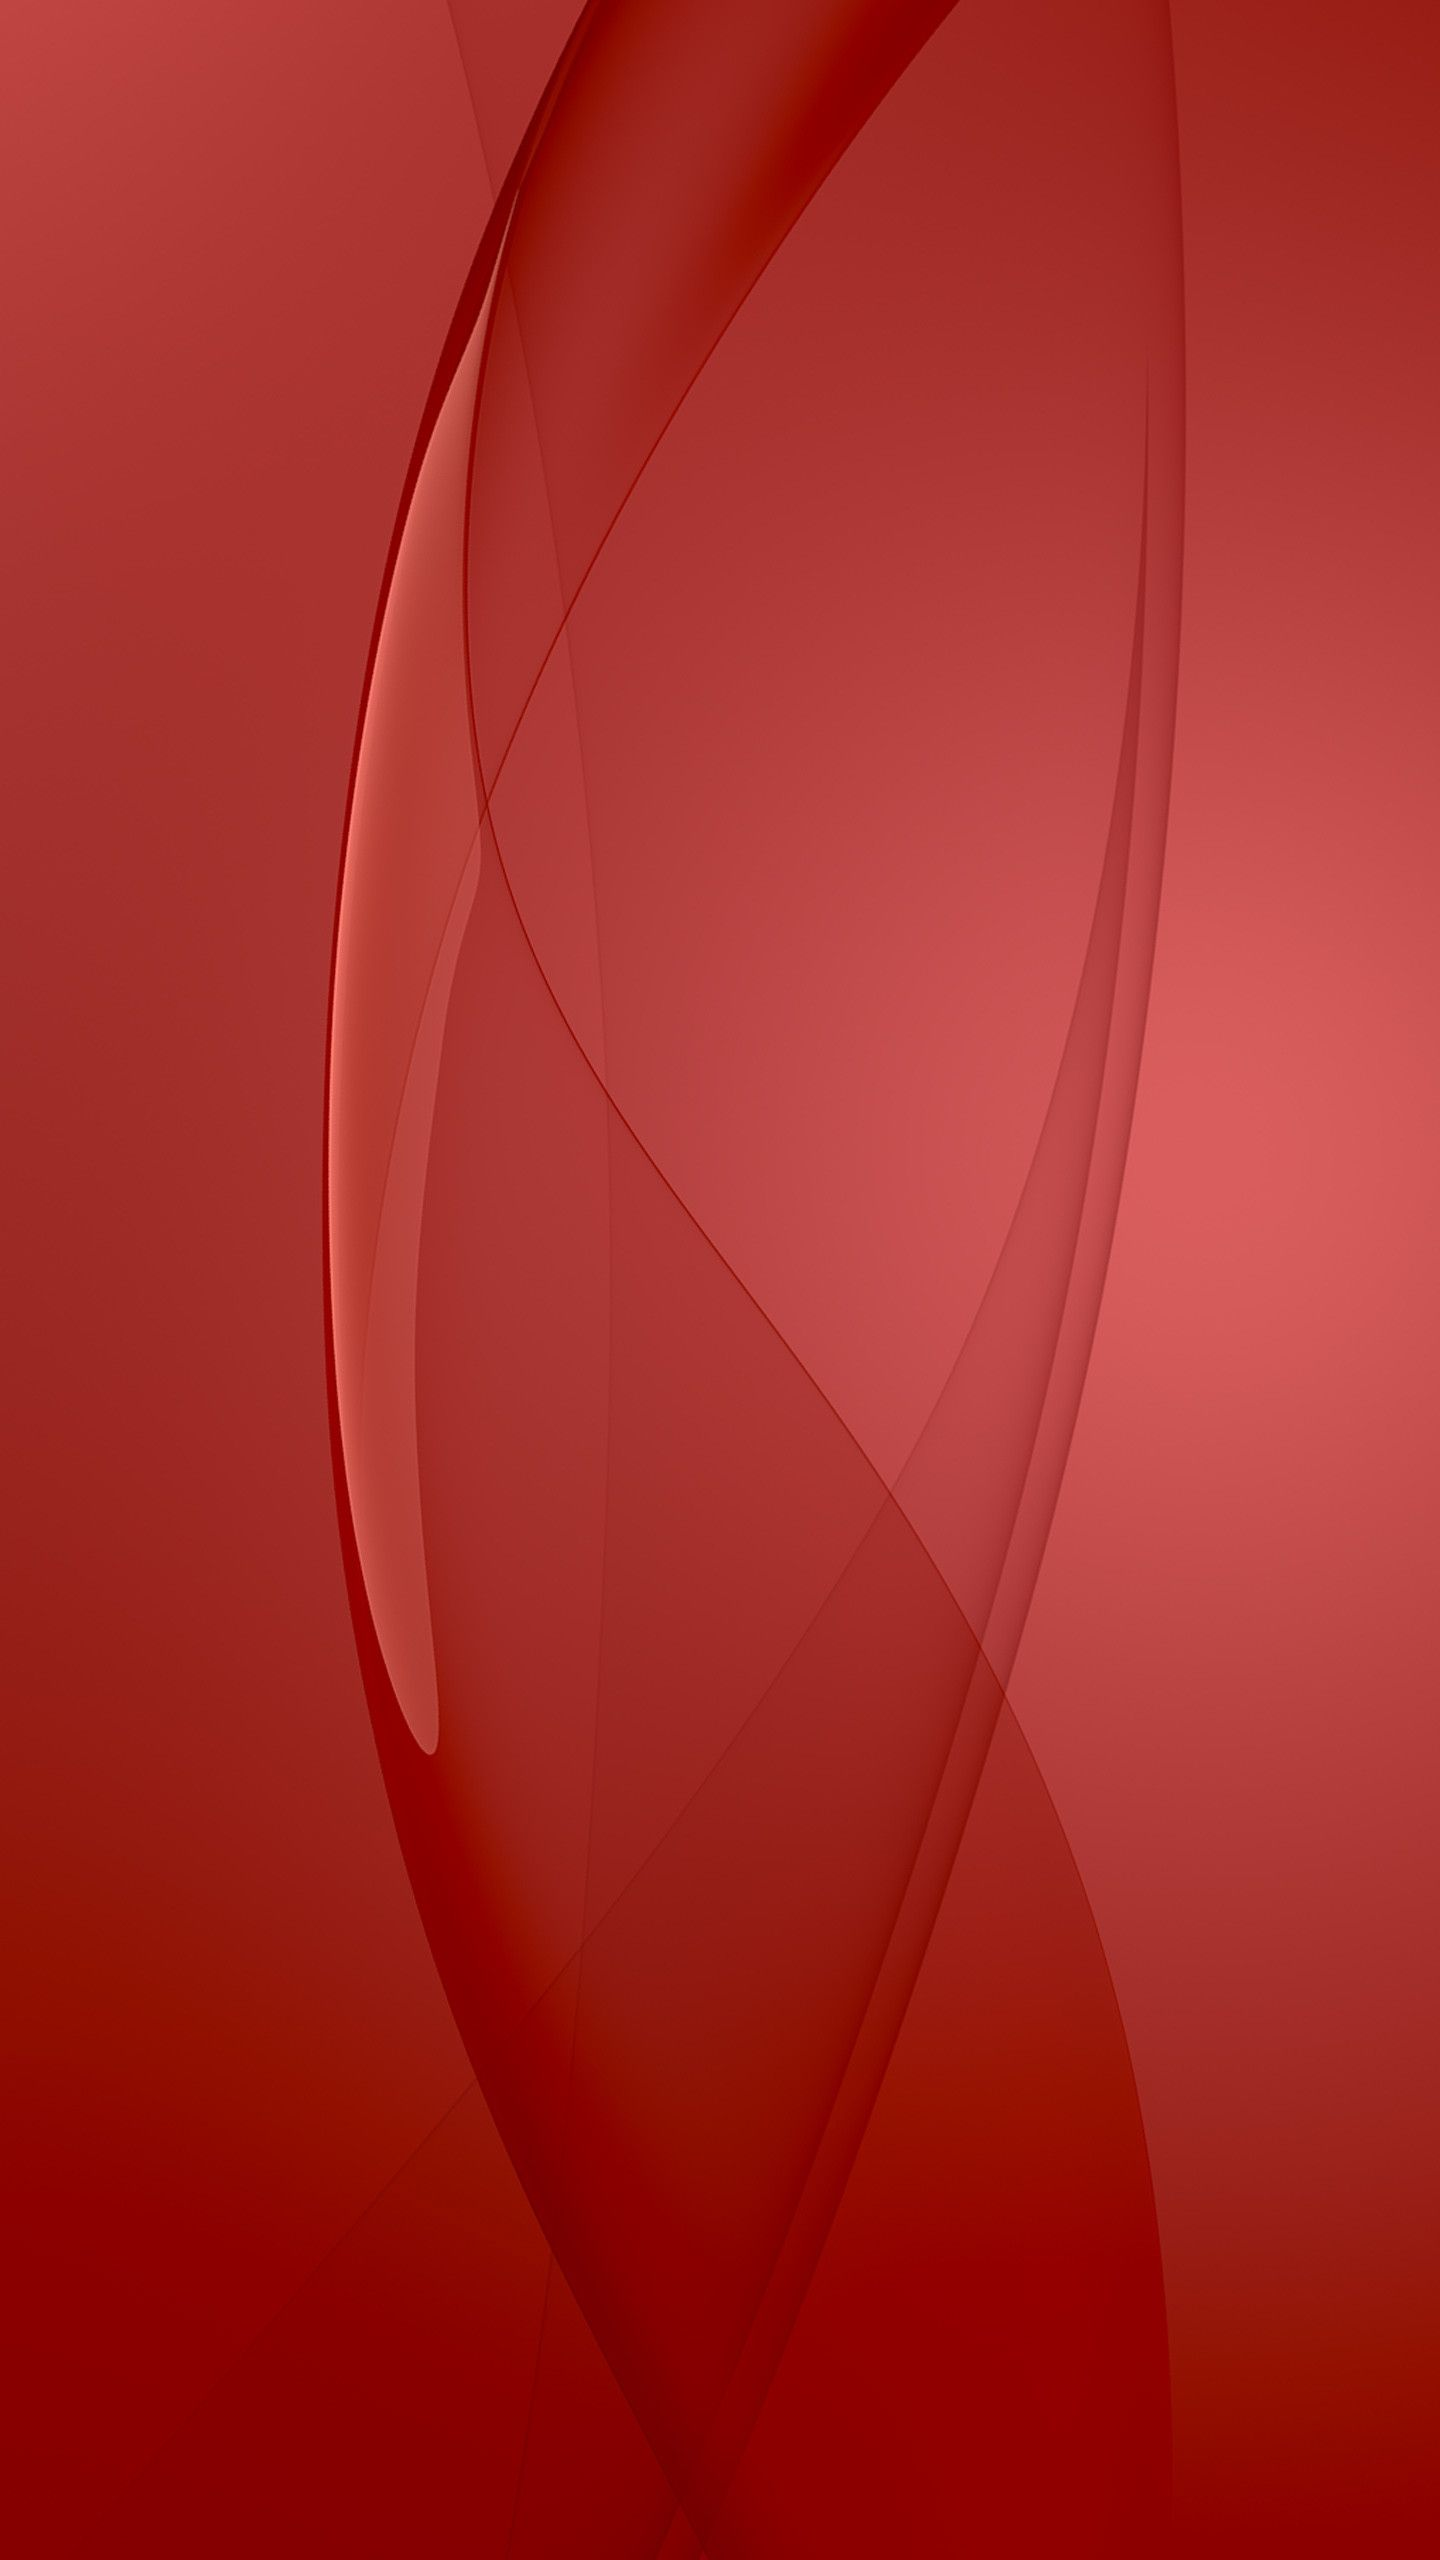 1440x2560 Red Wallpaper Abstract (69+ images)